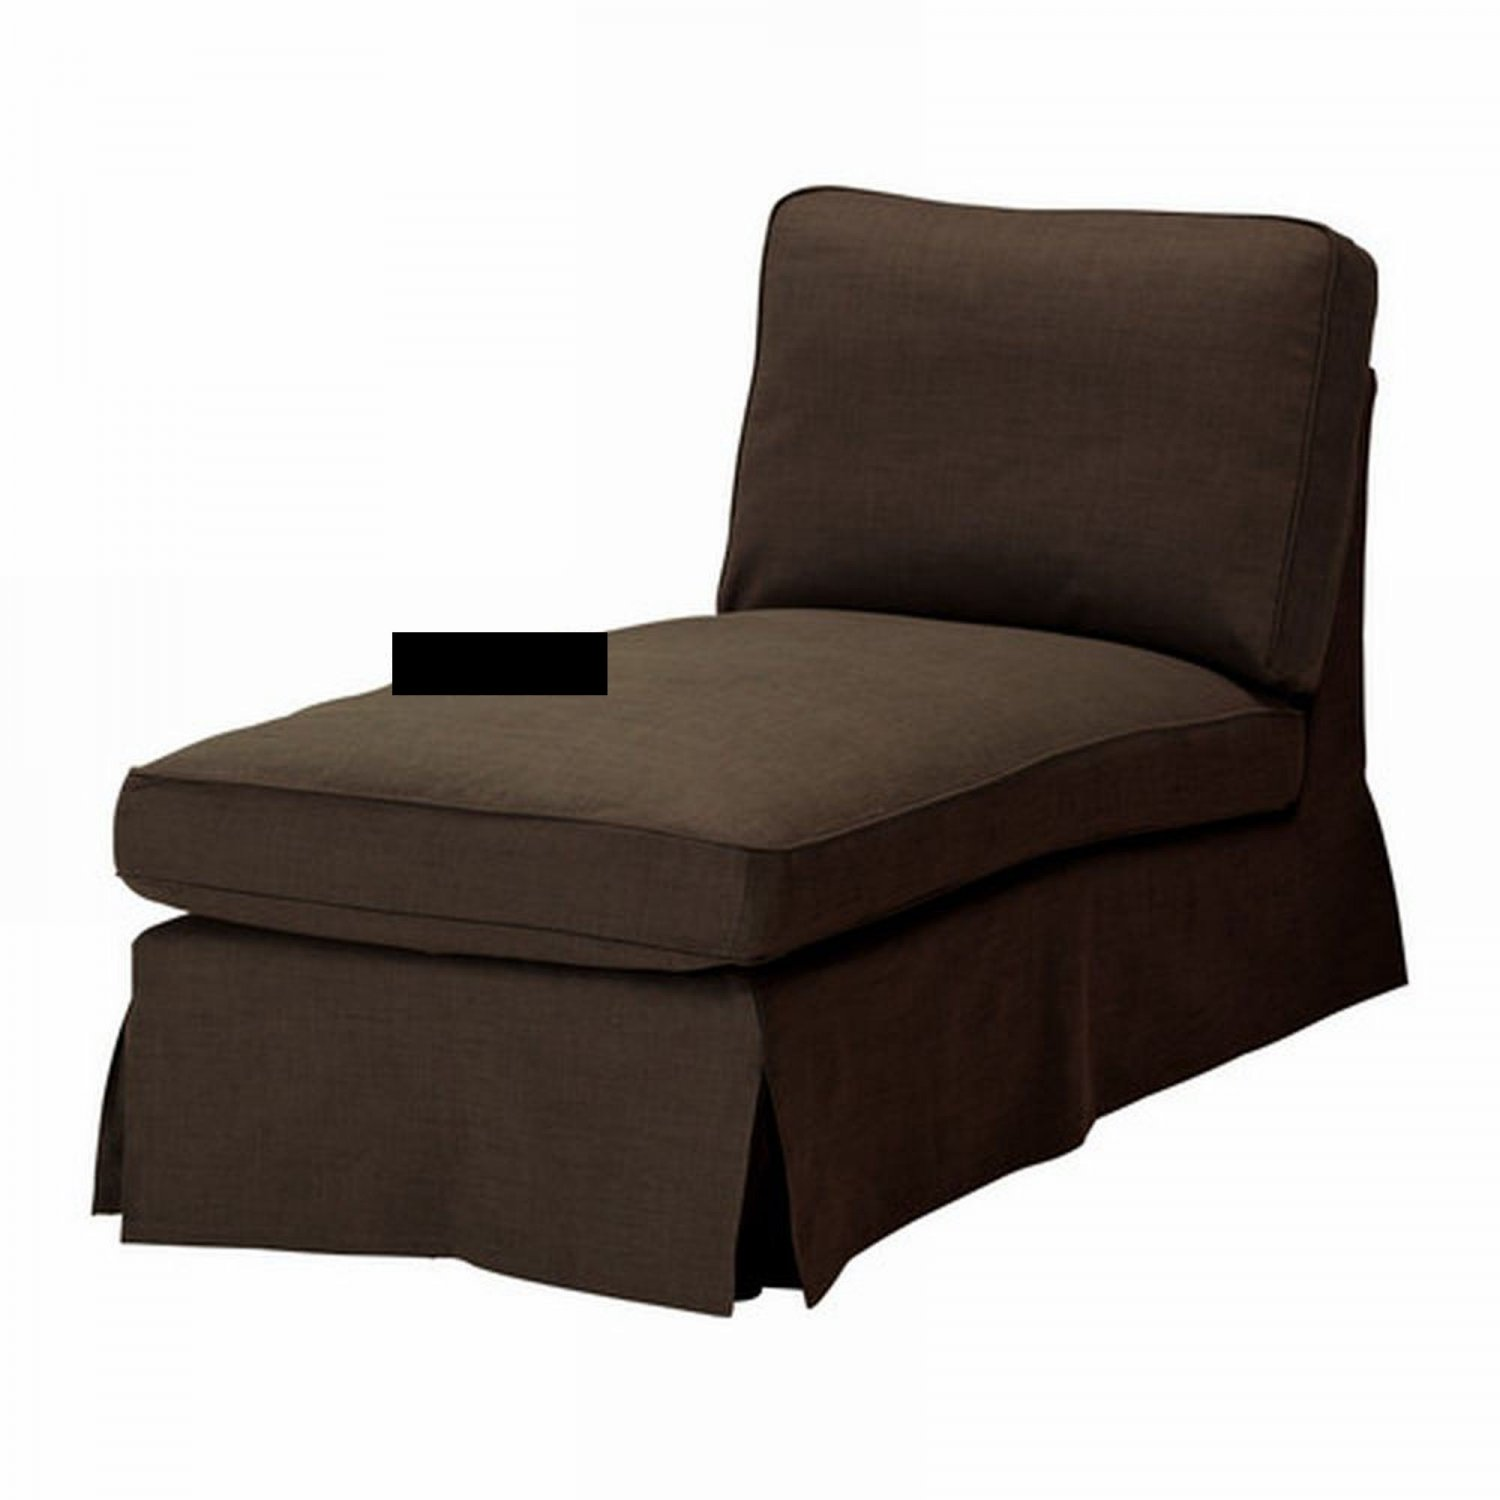 ikea ektorp chaise longue cover slipcover svanby brown. Black Bedroom Furniture Sets. Home Design Ideas